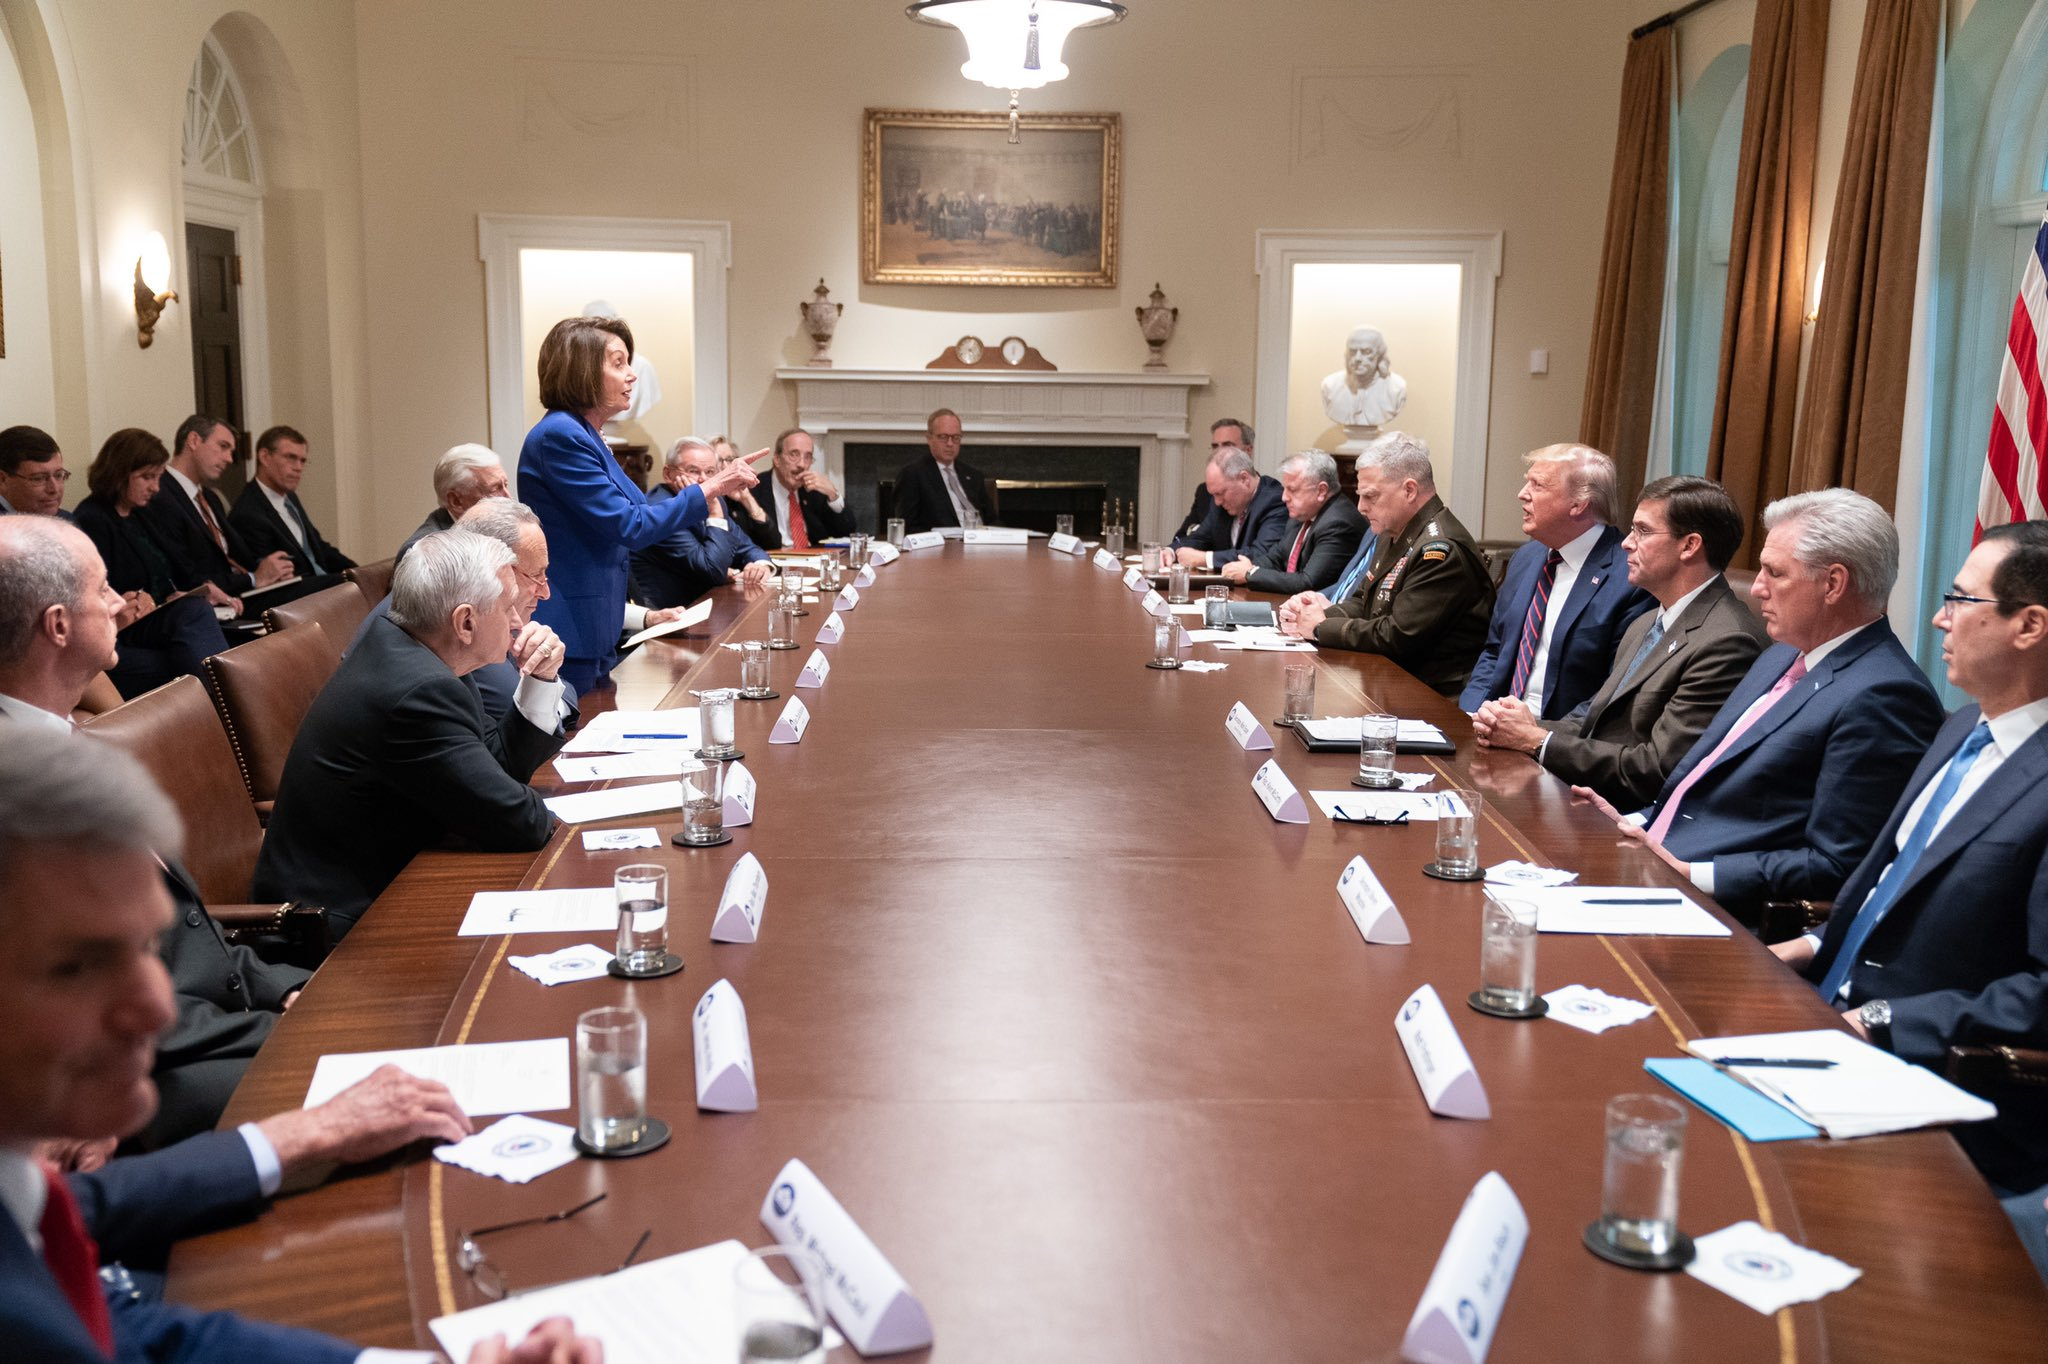 Menendez was in the room when Trump mocked Pelosi and Dems walked out. Here's what he saw.